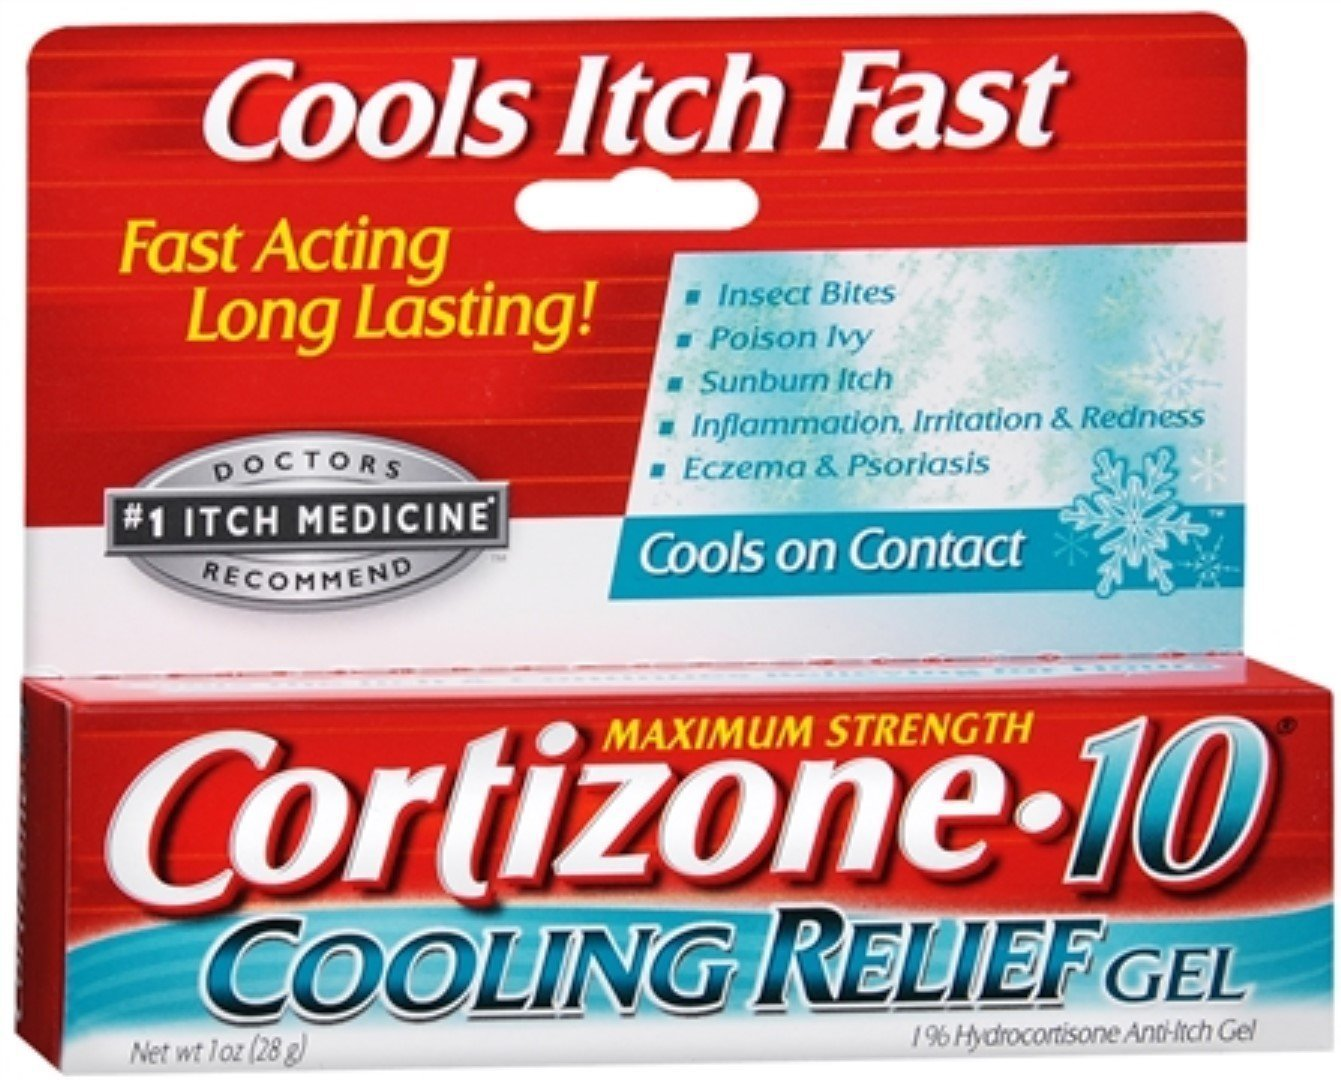 Cortizone-10 Cooling Relief Anti-Itch Gel 1 oz (Pack of 5)